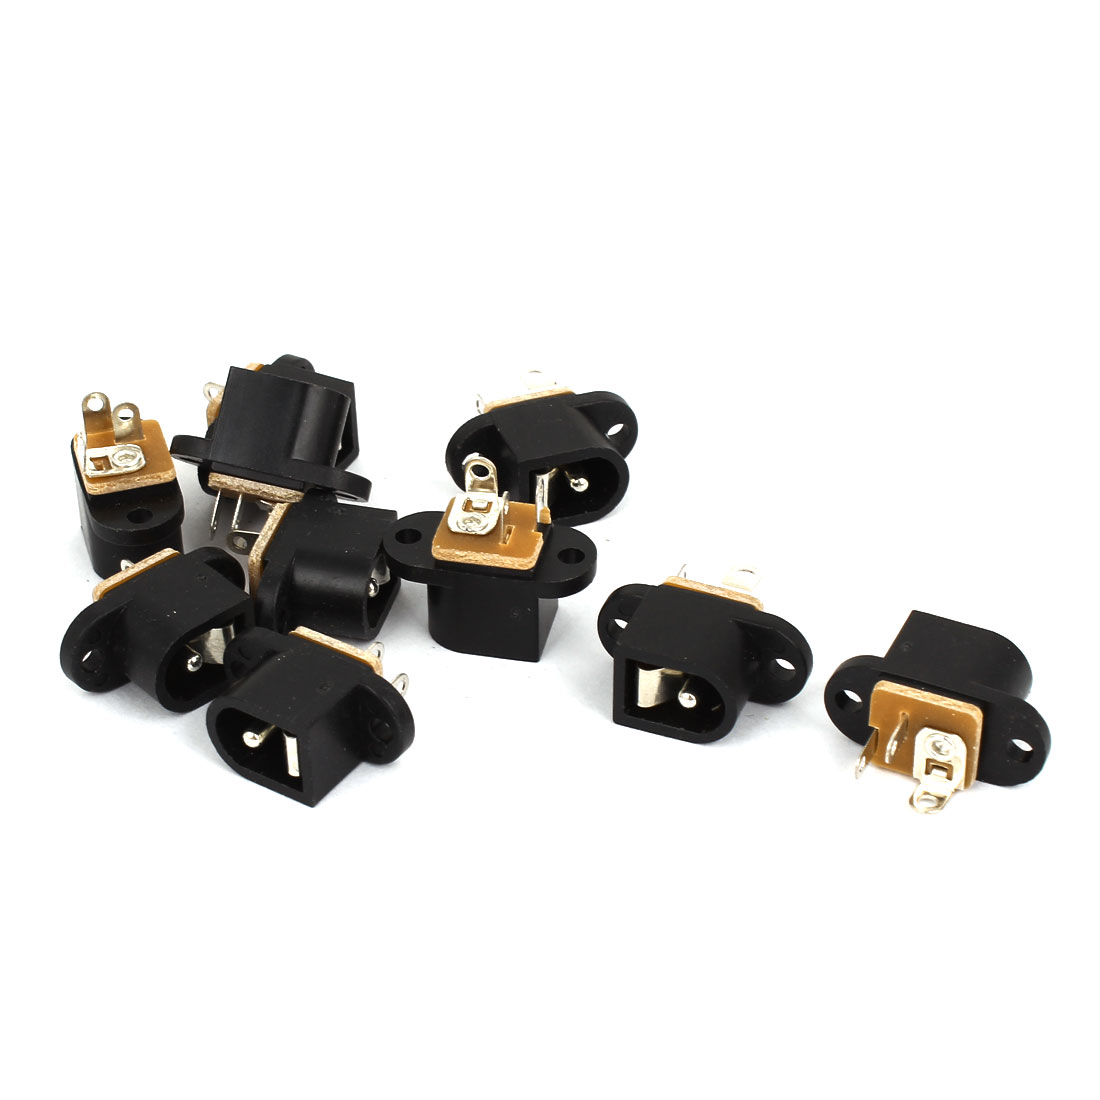 10 Pcs 5.5mm x 2.1mm 3 Terminals Female DC Socket Jack PCB Charger Power Plug DC-016